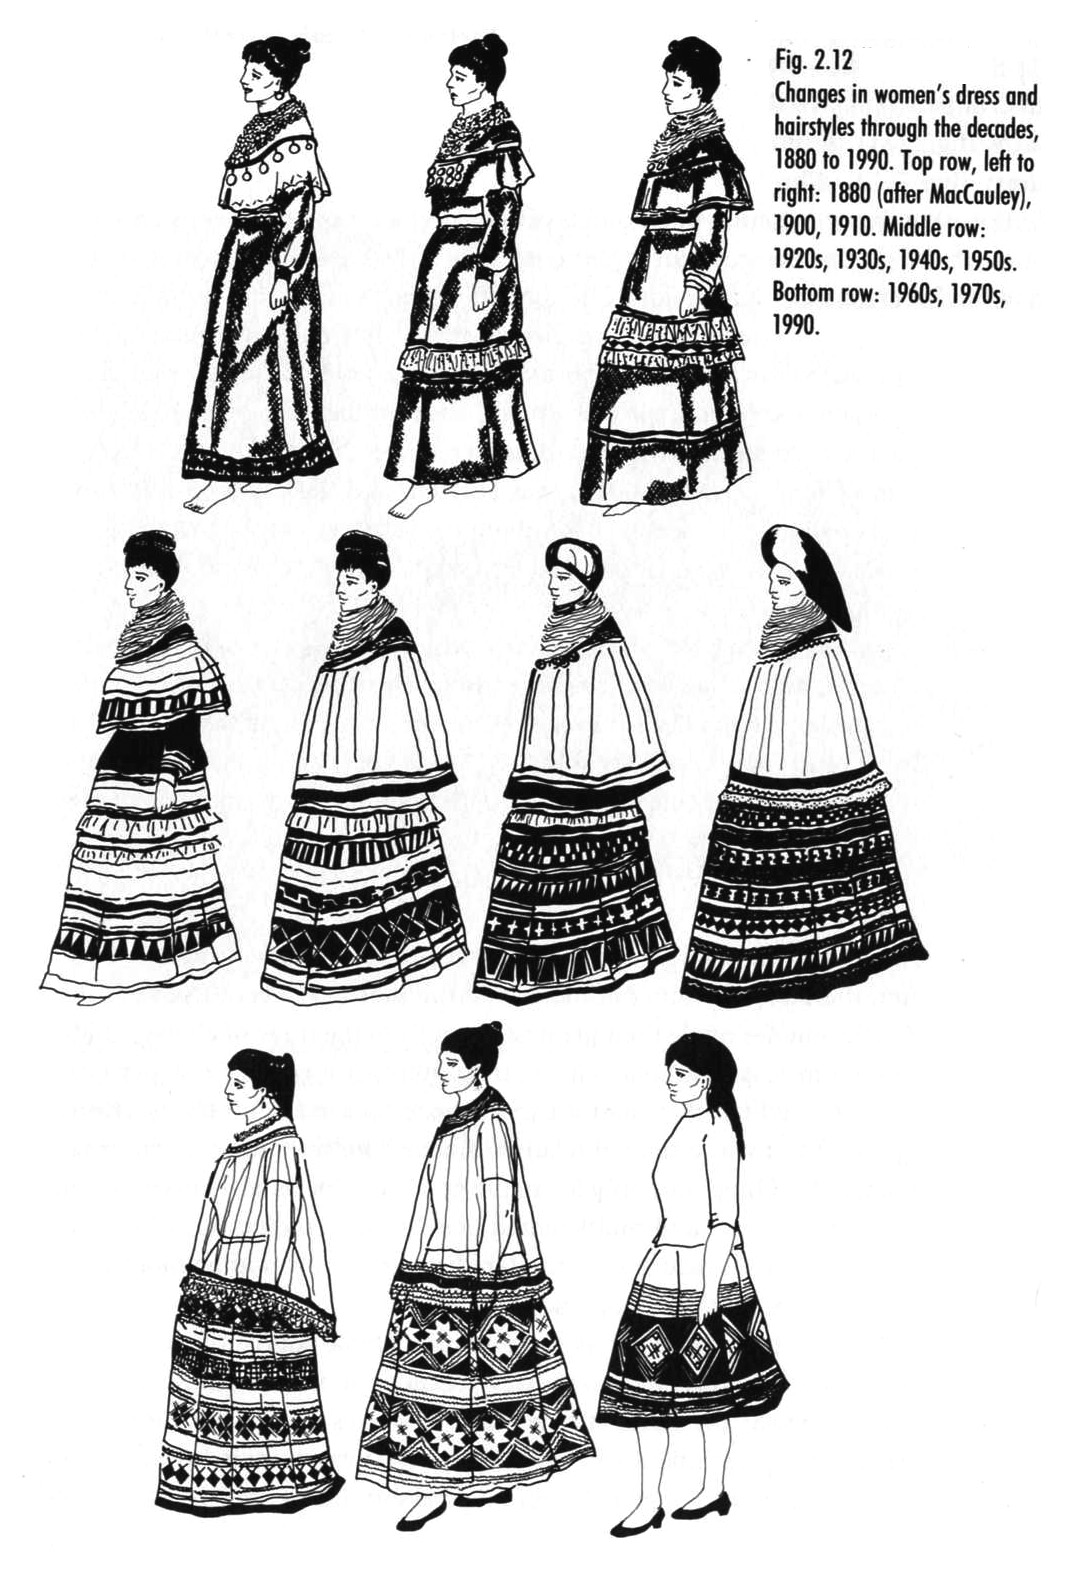 floridamuseumproject / Clothing Timeline: Women